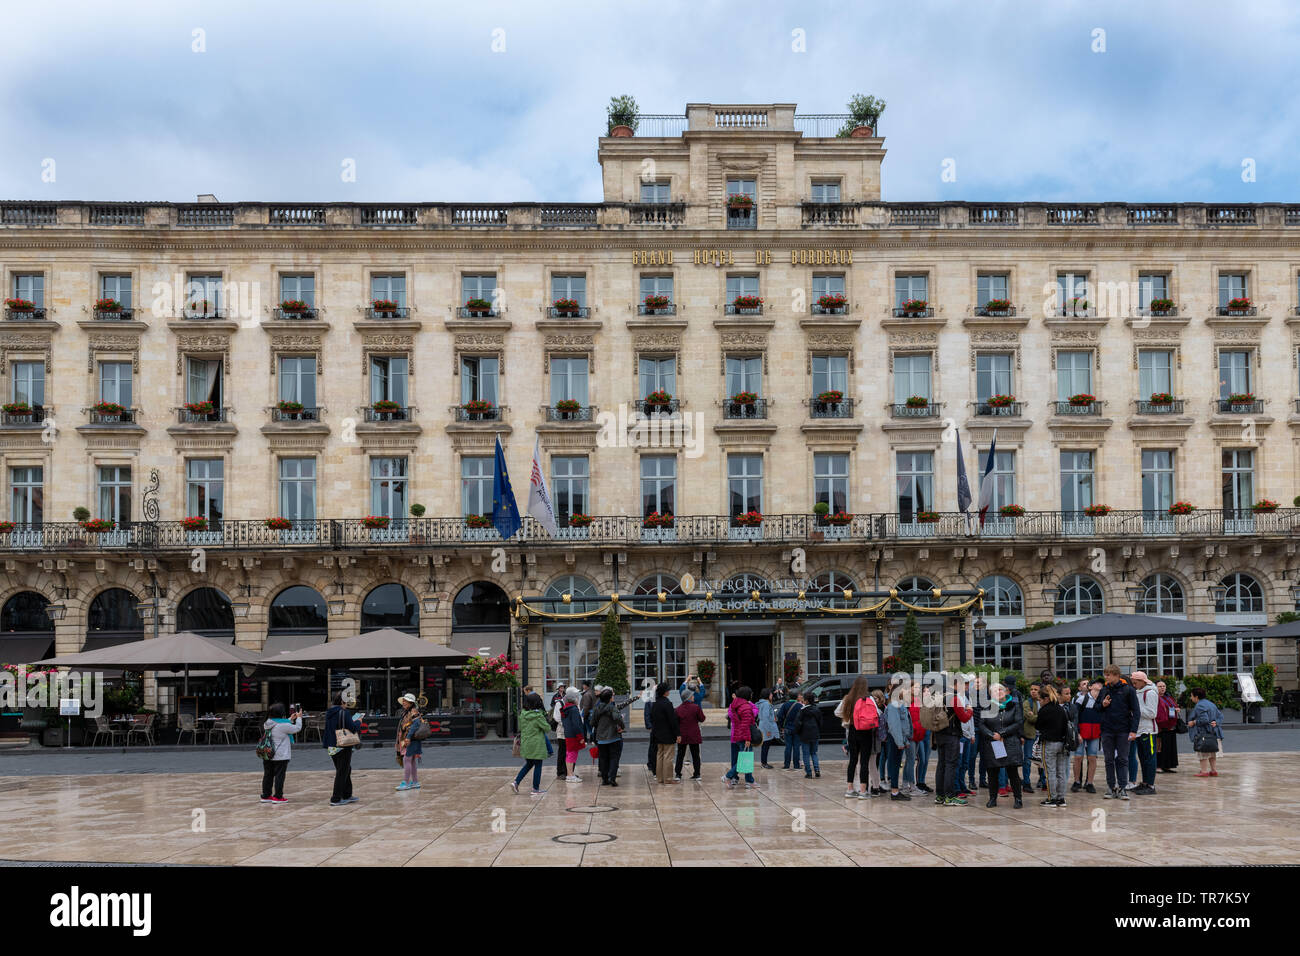 Intercontinental Grand Hotel in Bordeaux, France with Neoclassical Facade Stock Photo